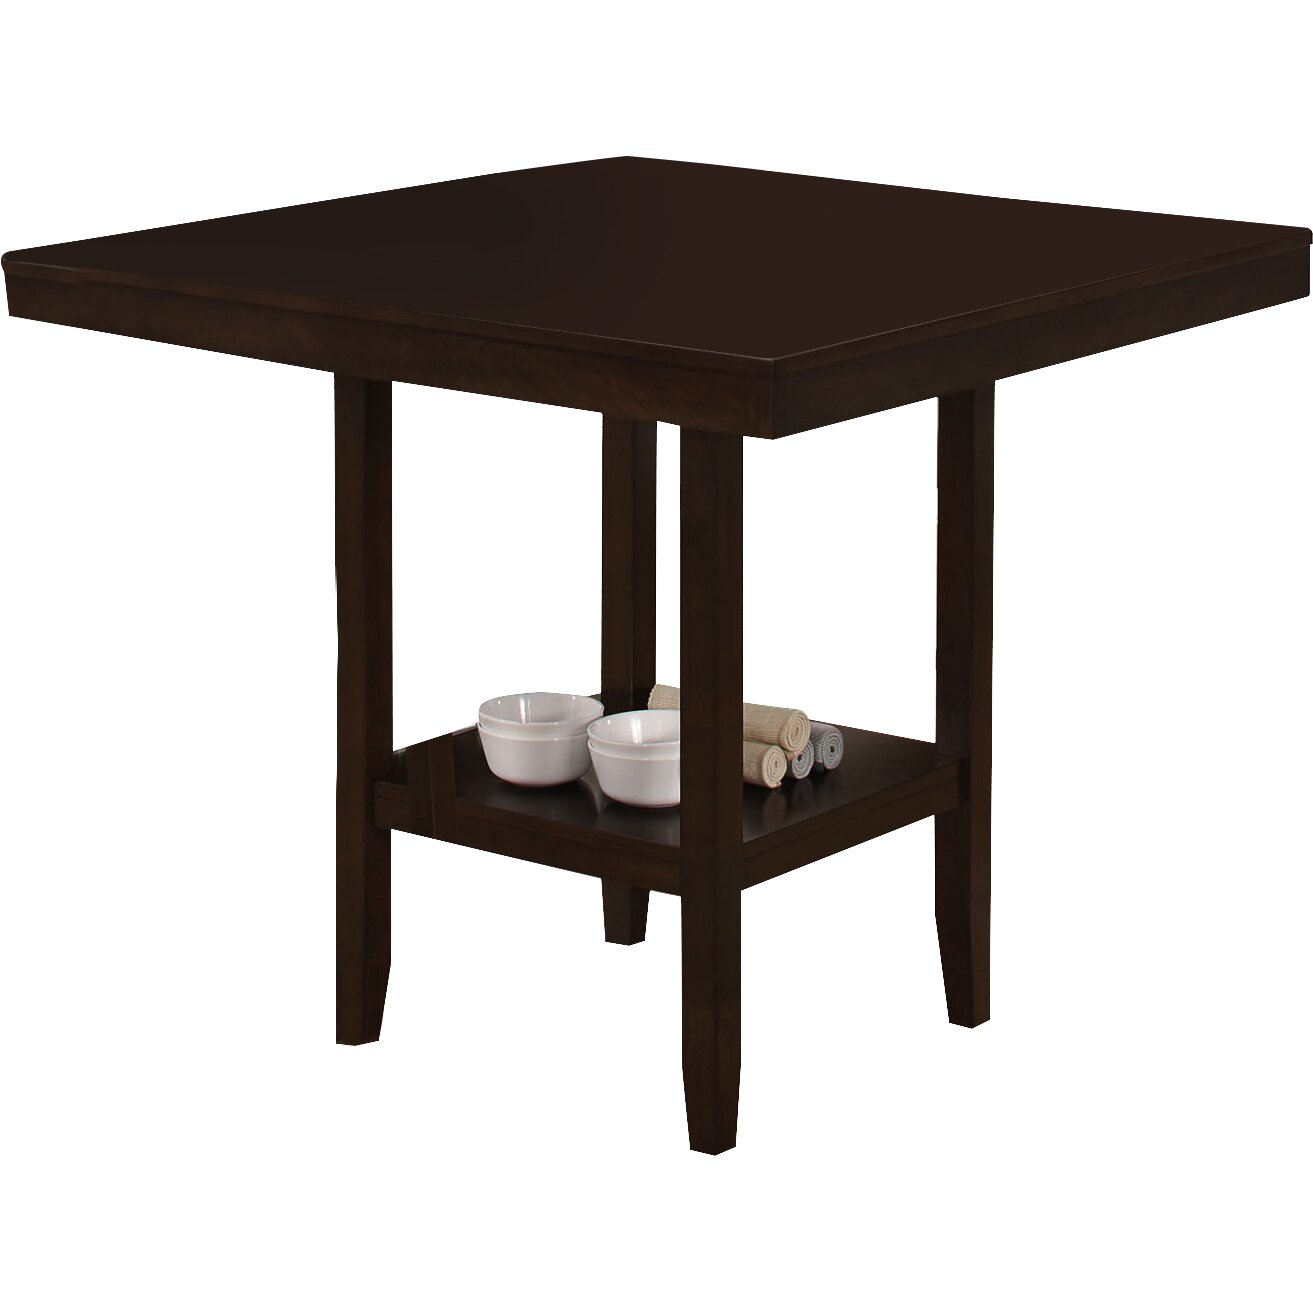 Monarch specialties inc counter height dining table for Counter height dining table